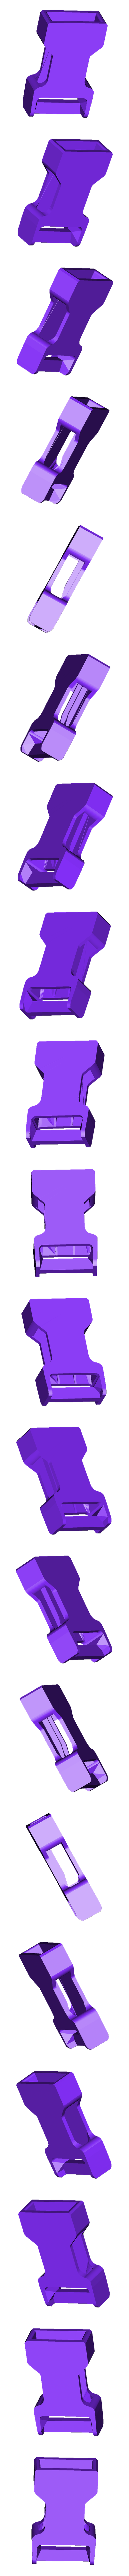 Female_Buckle.STL Download free STL file Zortrax Buckle • 3D printing template, Zortrax